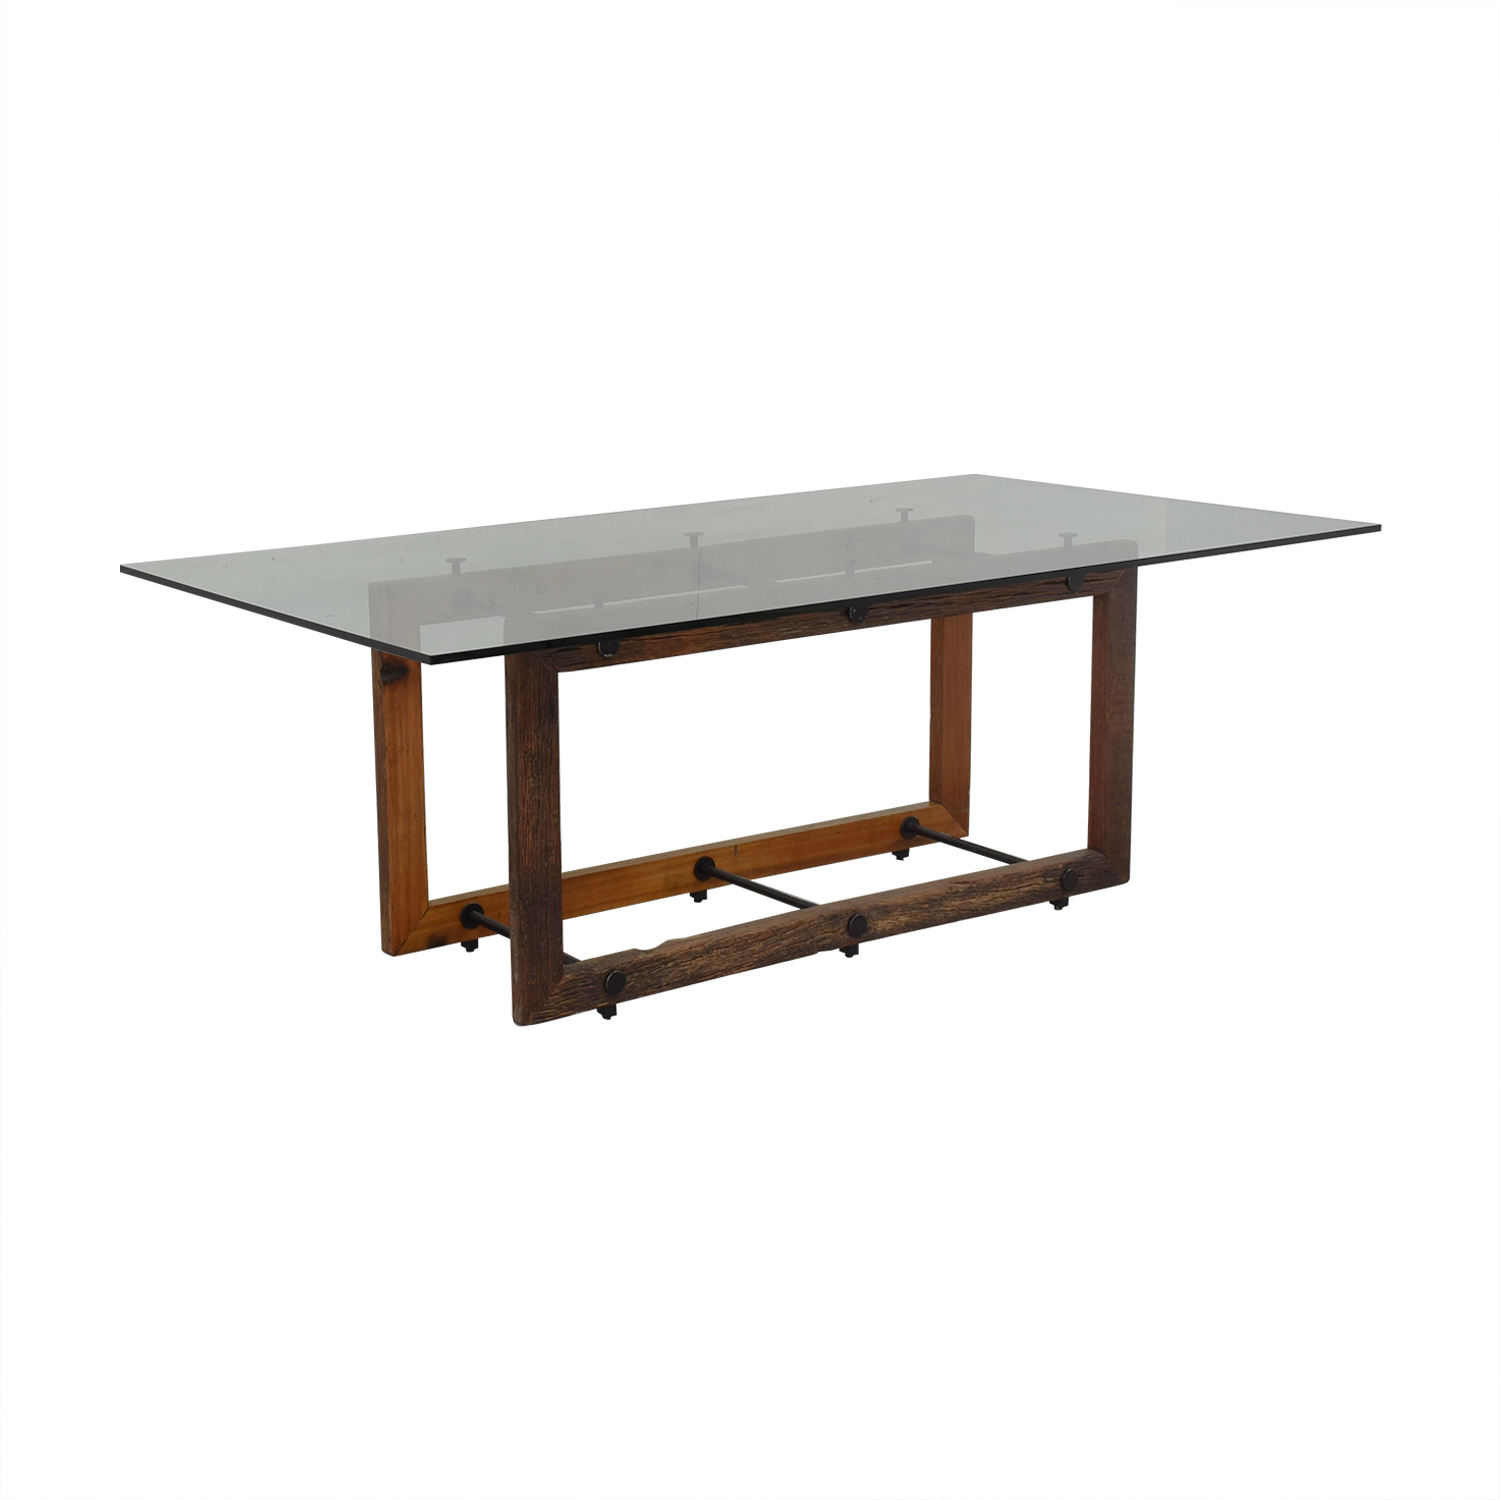 ABC Carpet & Home ABC Carpet & Home Glass Dining Table used